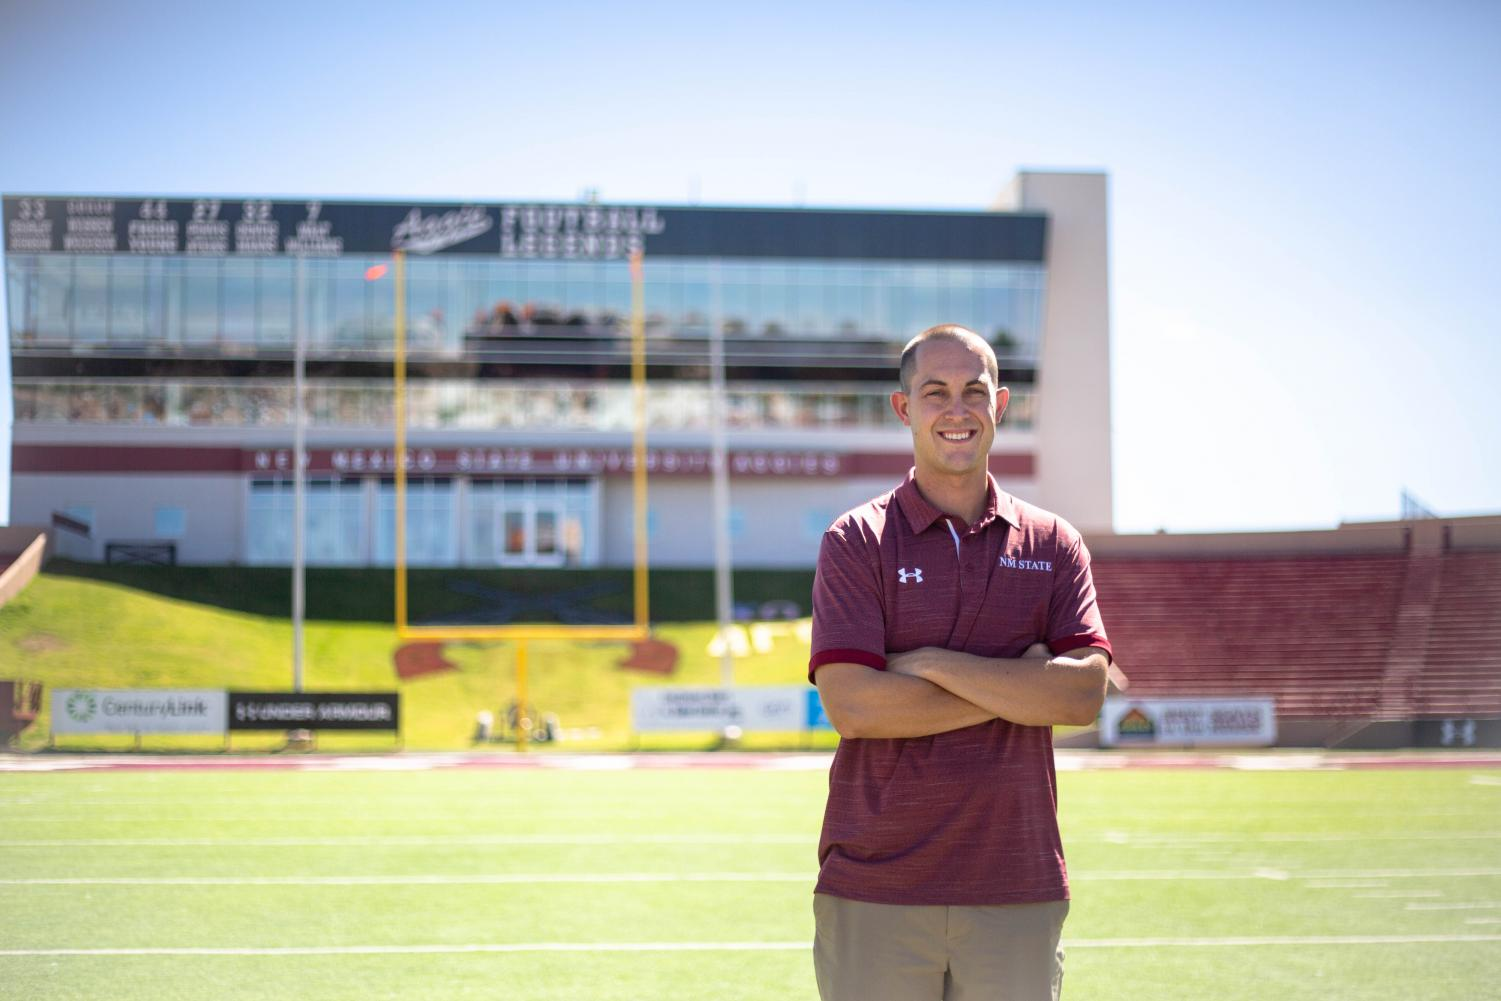 As DJ Downs leaves for the Phoenix Suns, he will remained beloved by Aggie fans for his time as Pistol Pete and Assistant AD of Marketing and Promotions.